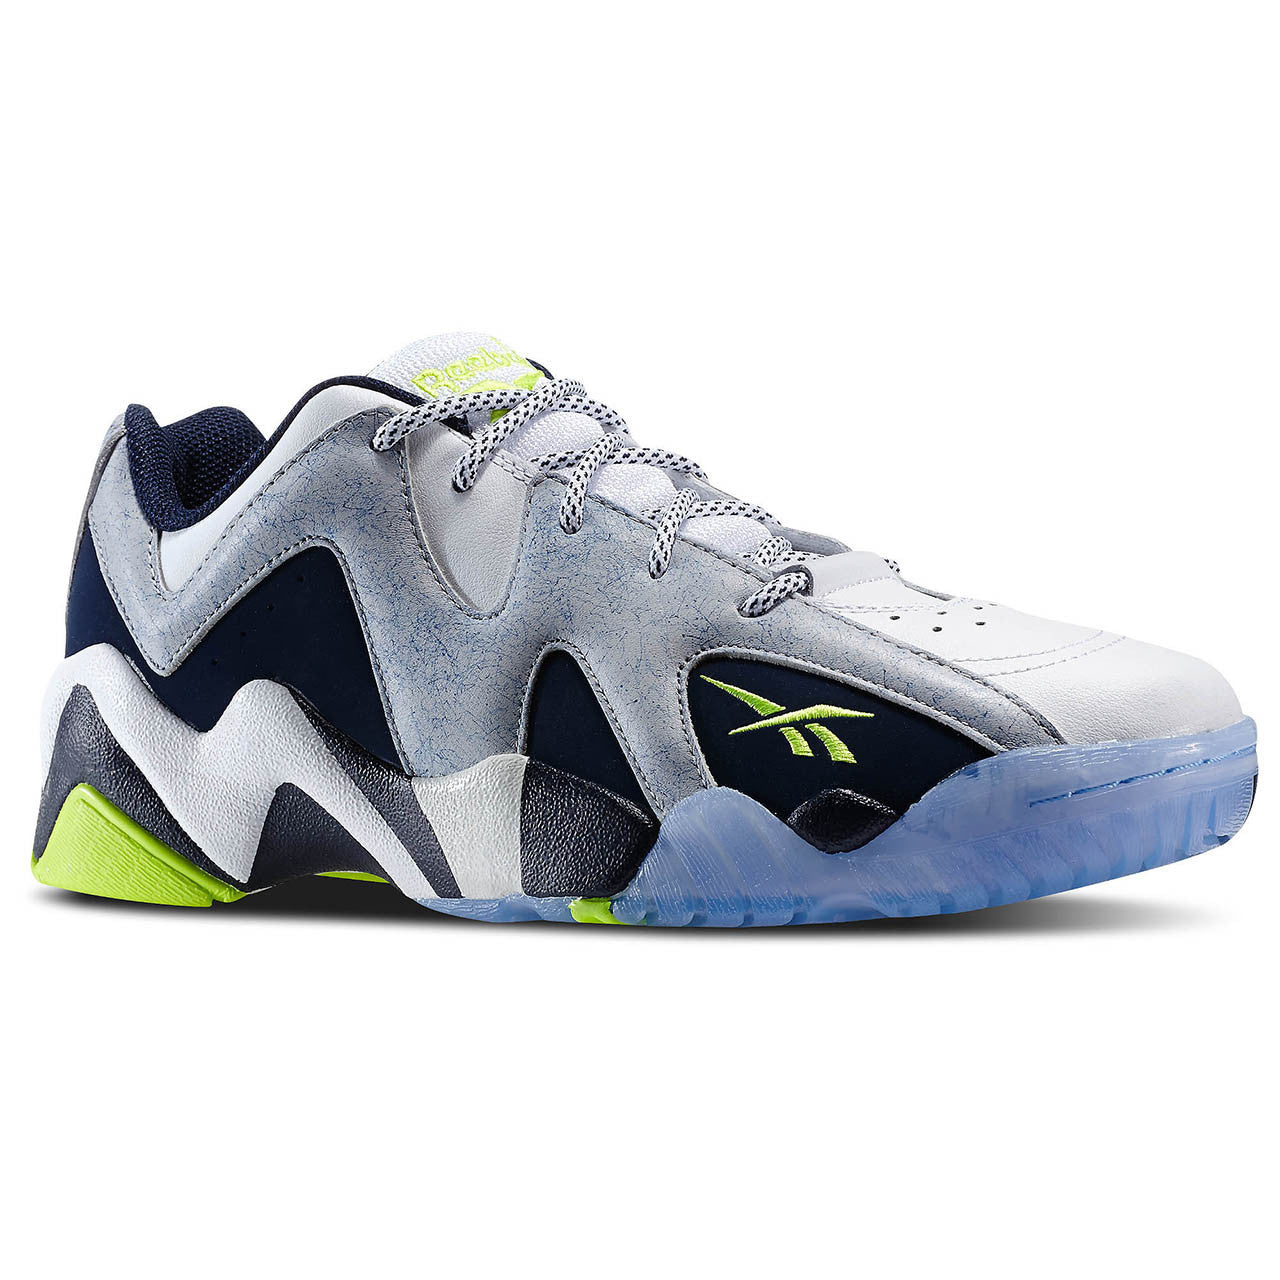 Reebok Kamikaze II Low Fashion Shoe - White Steel Blue Yellow - Mens -  Shoplifestyle d4504c014